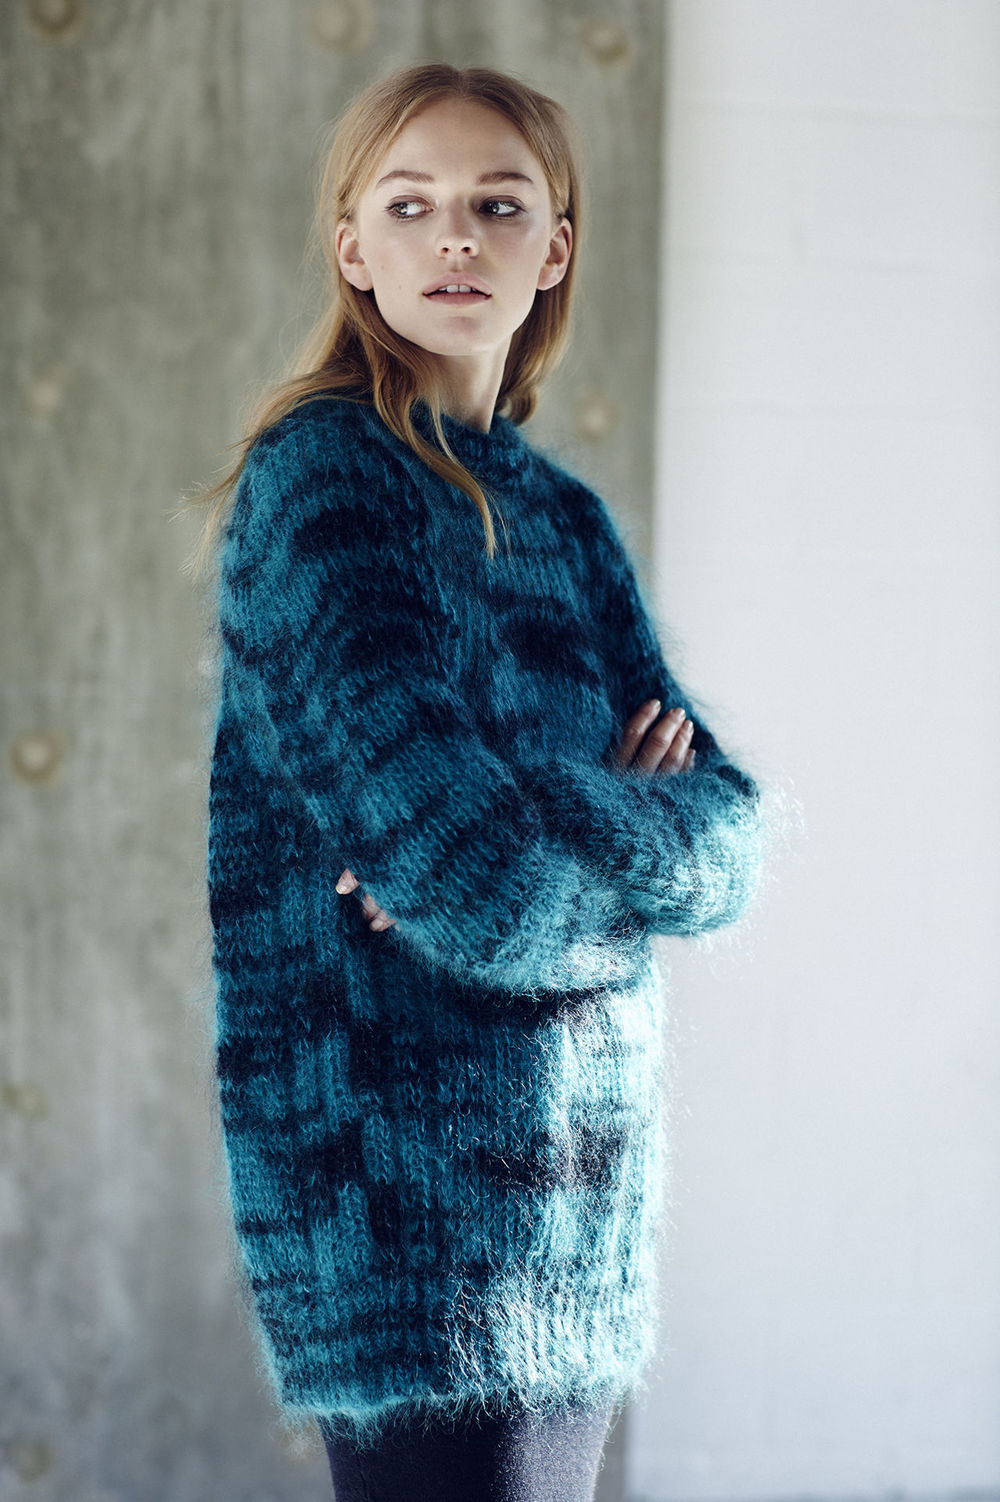 whistles_knitwear_aw14_01_004fe780500784.jpg